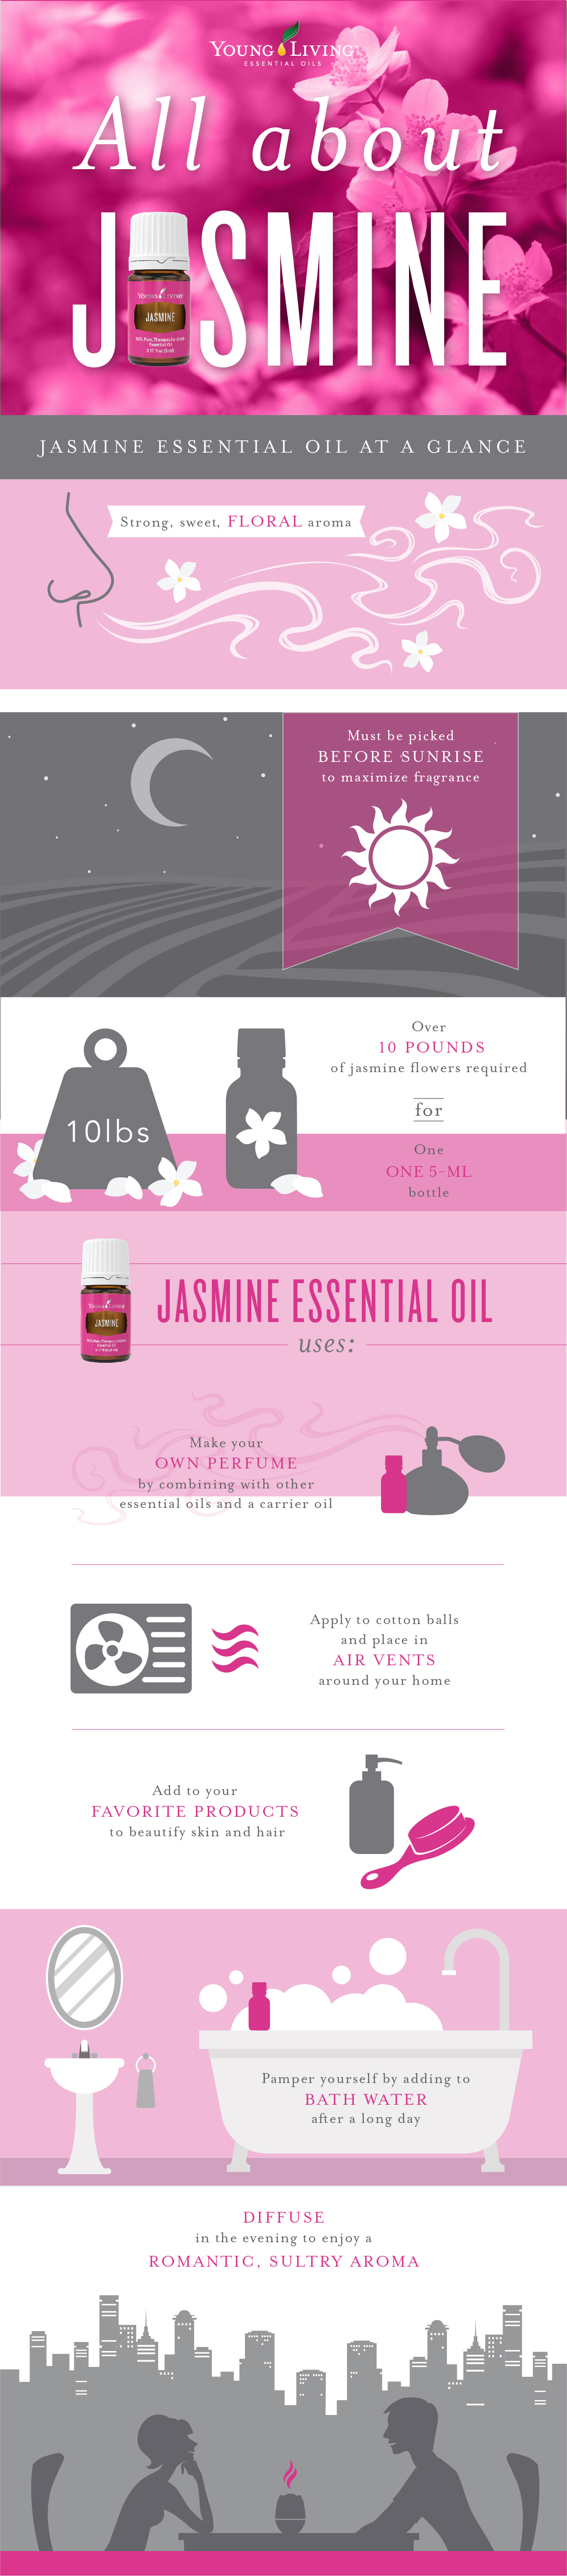 All About Jasmine Infographic